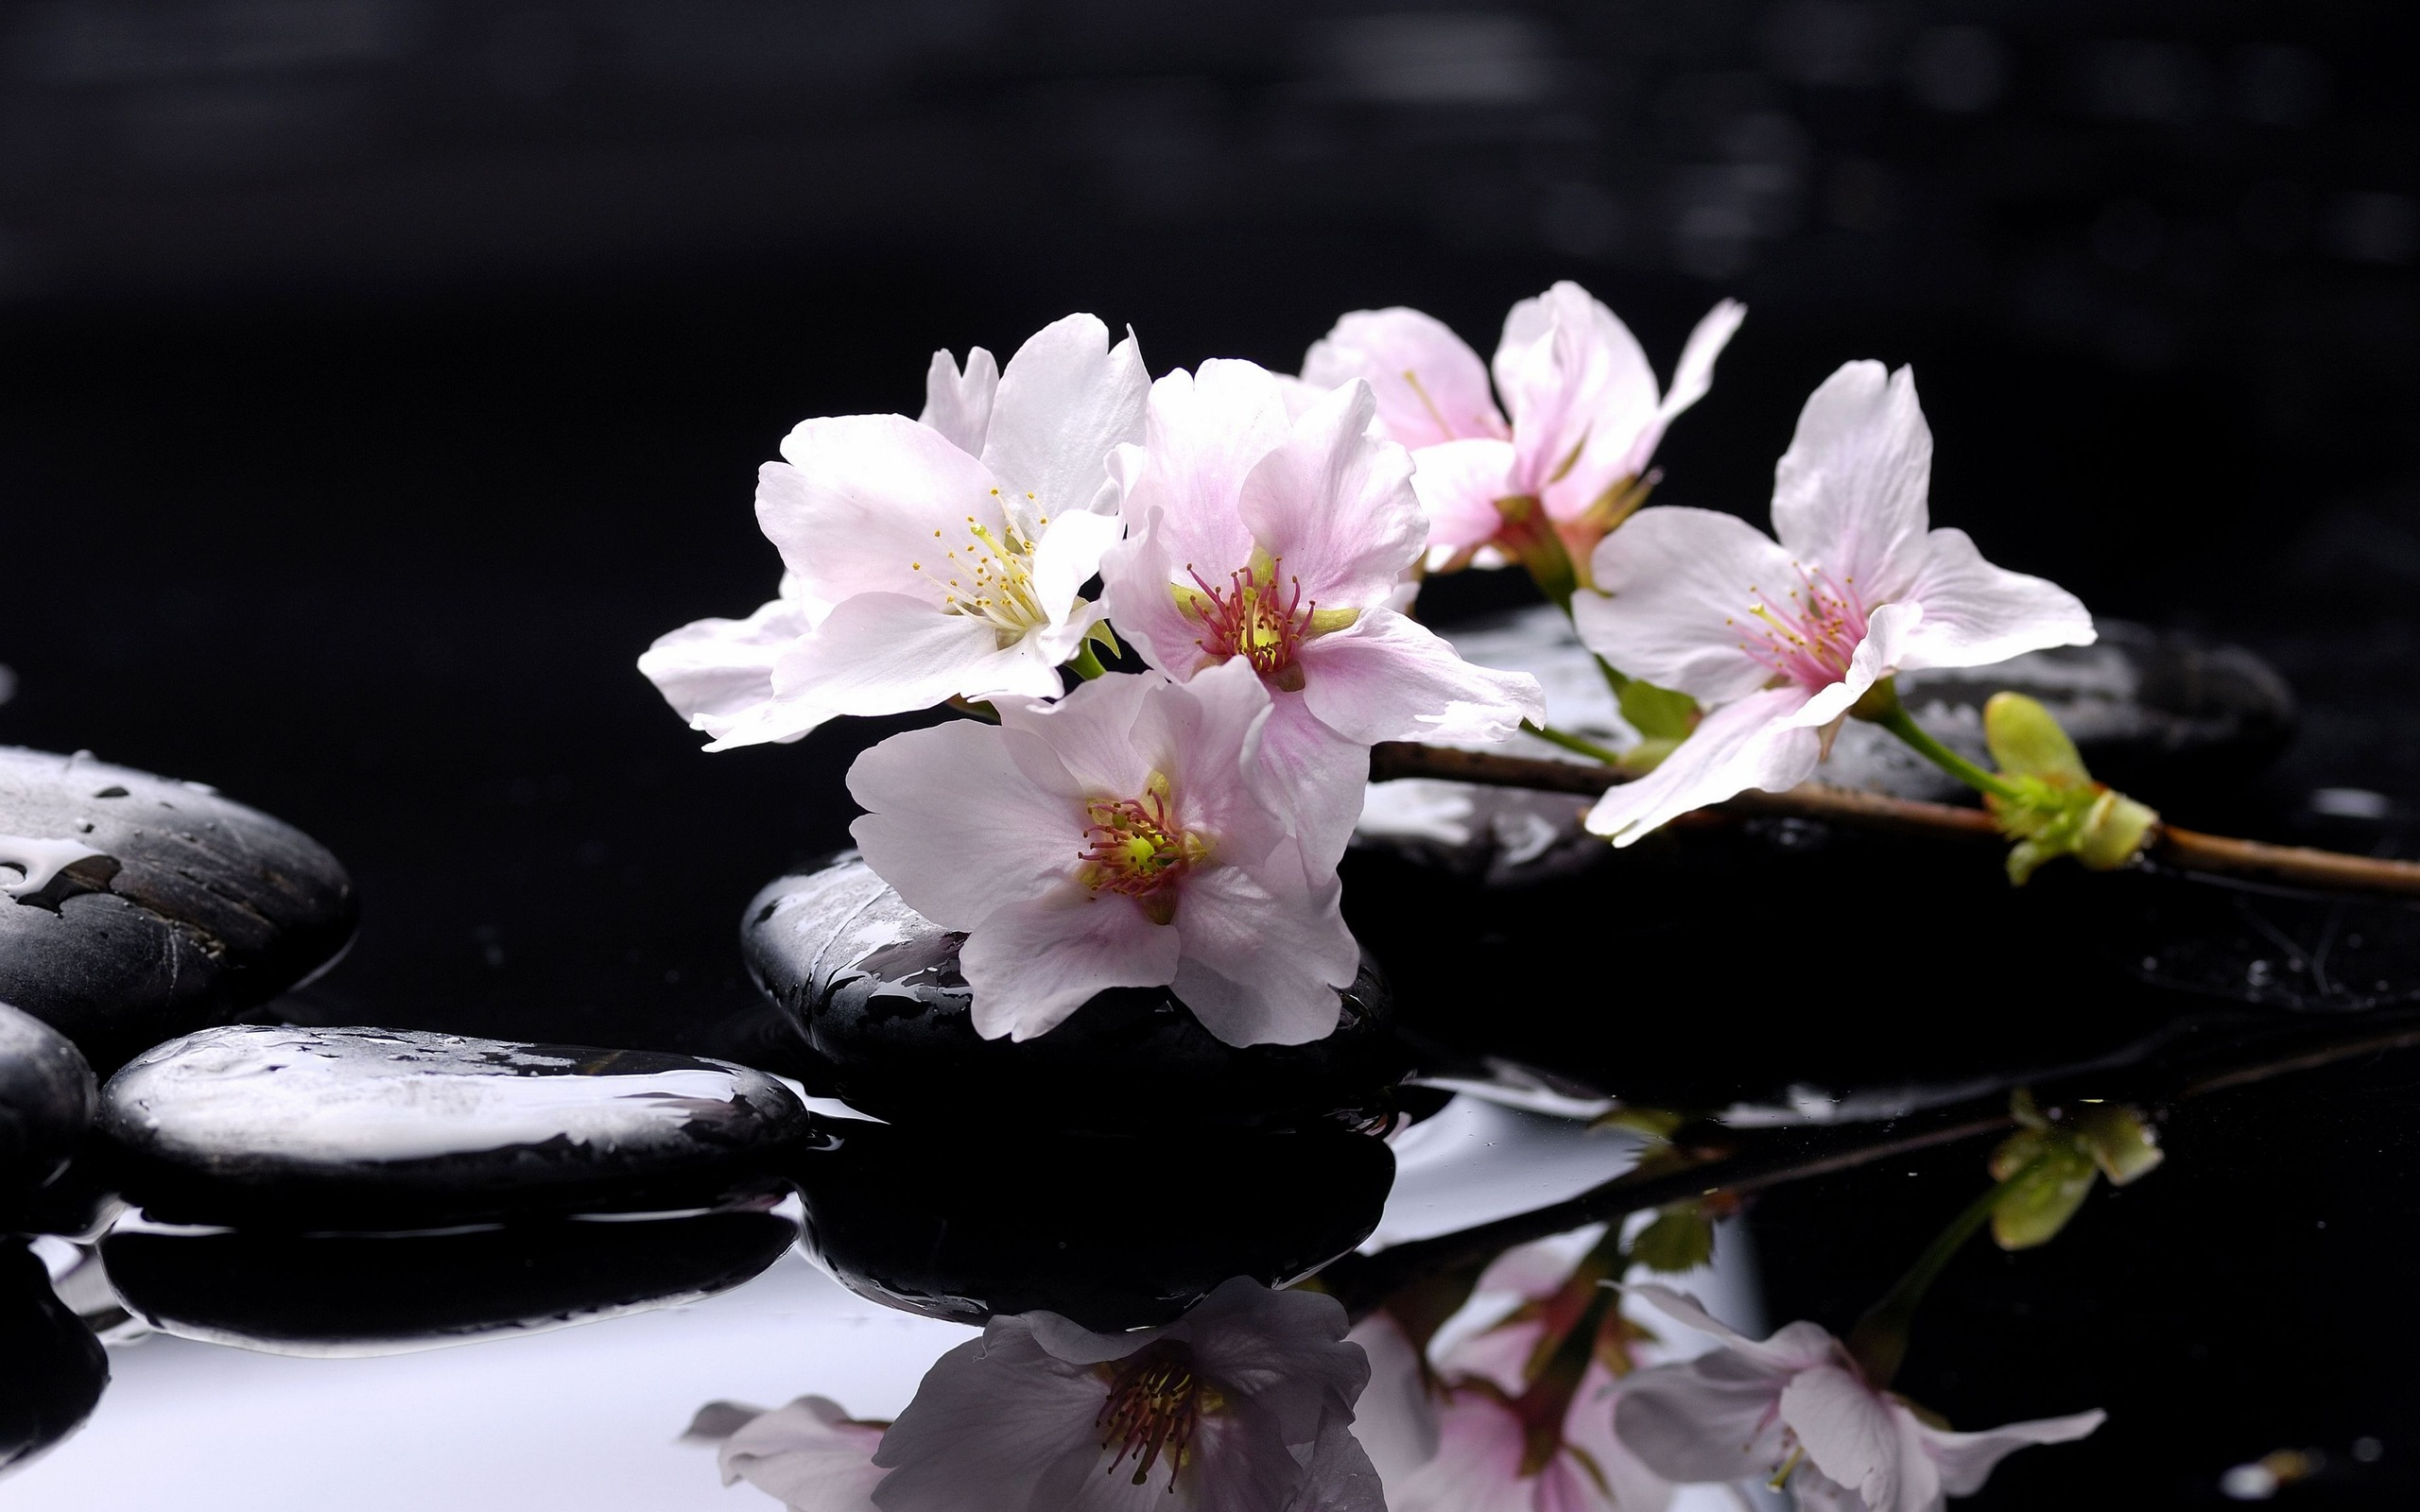 Lovely Spa Wallpaper 42680 2560x1600 px